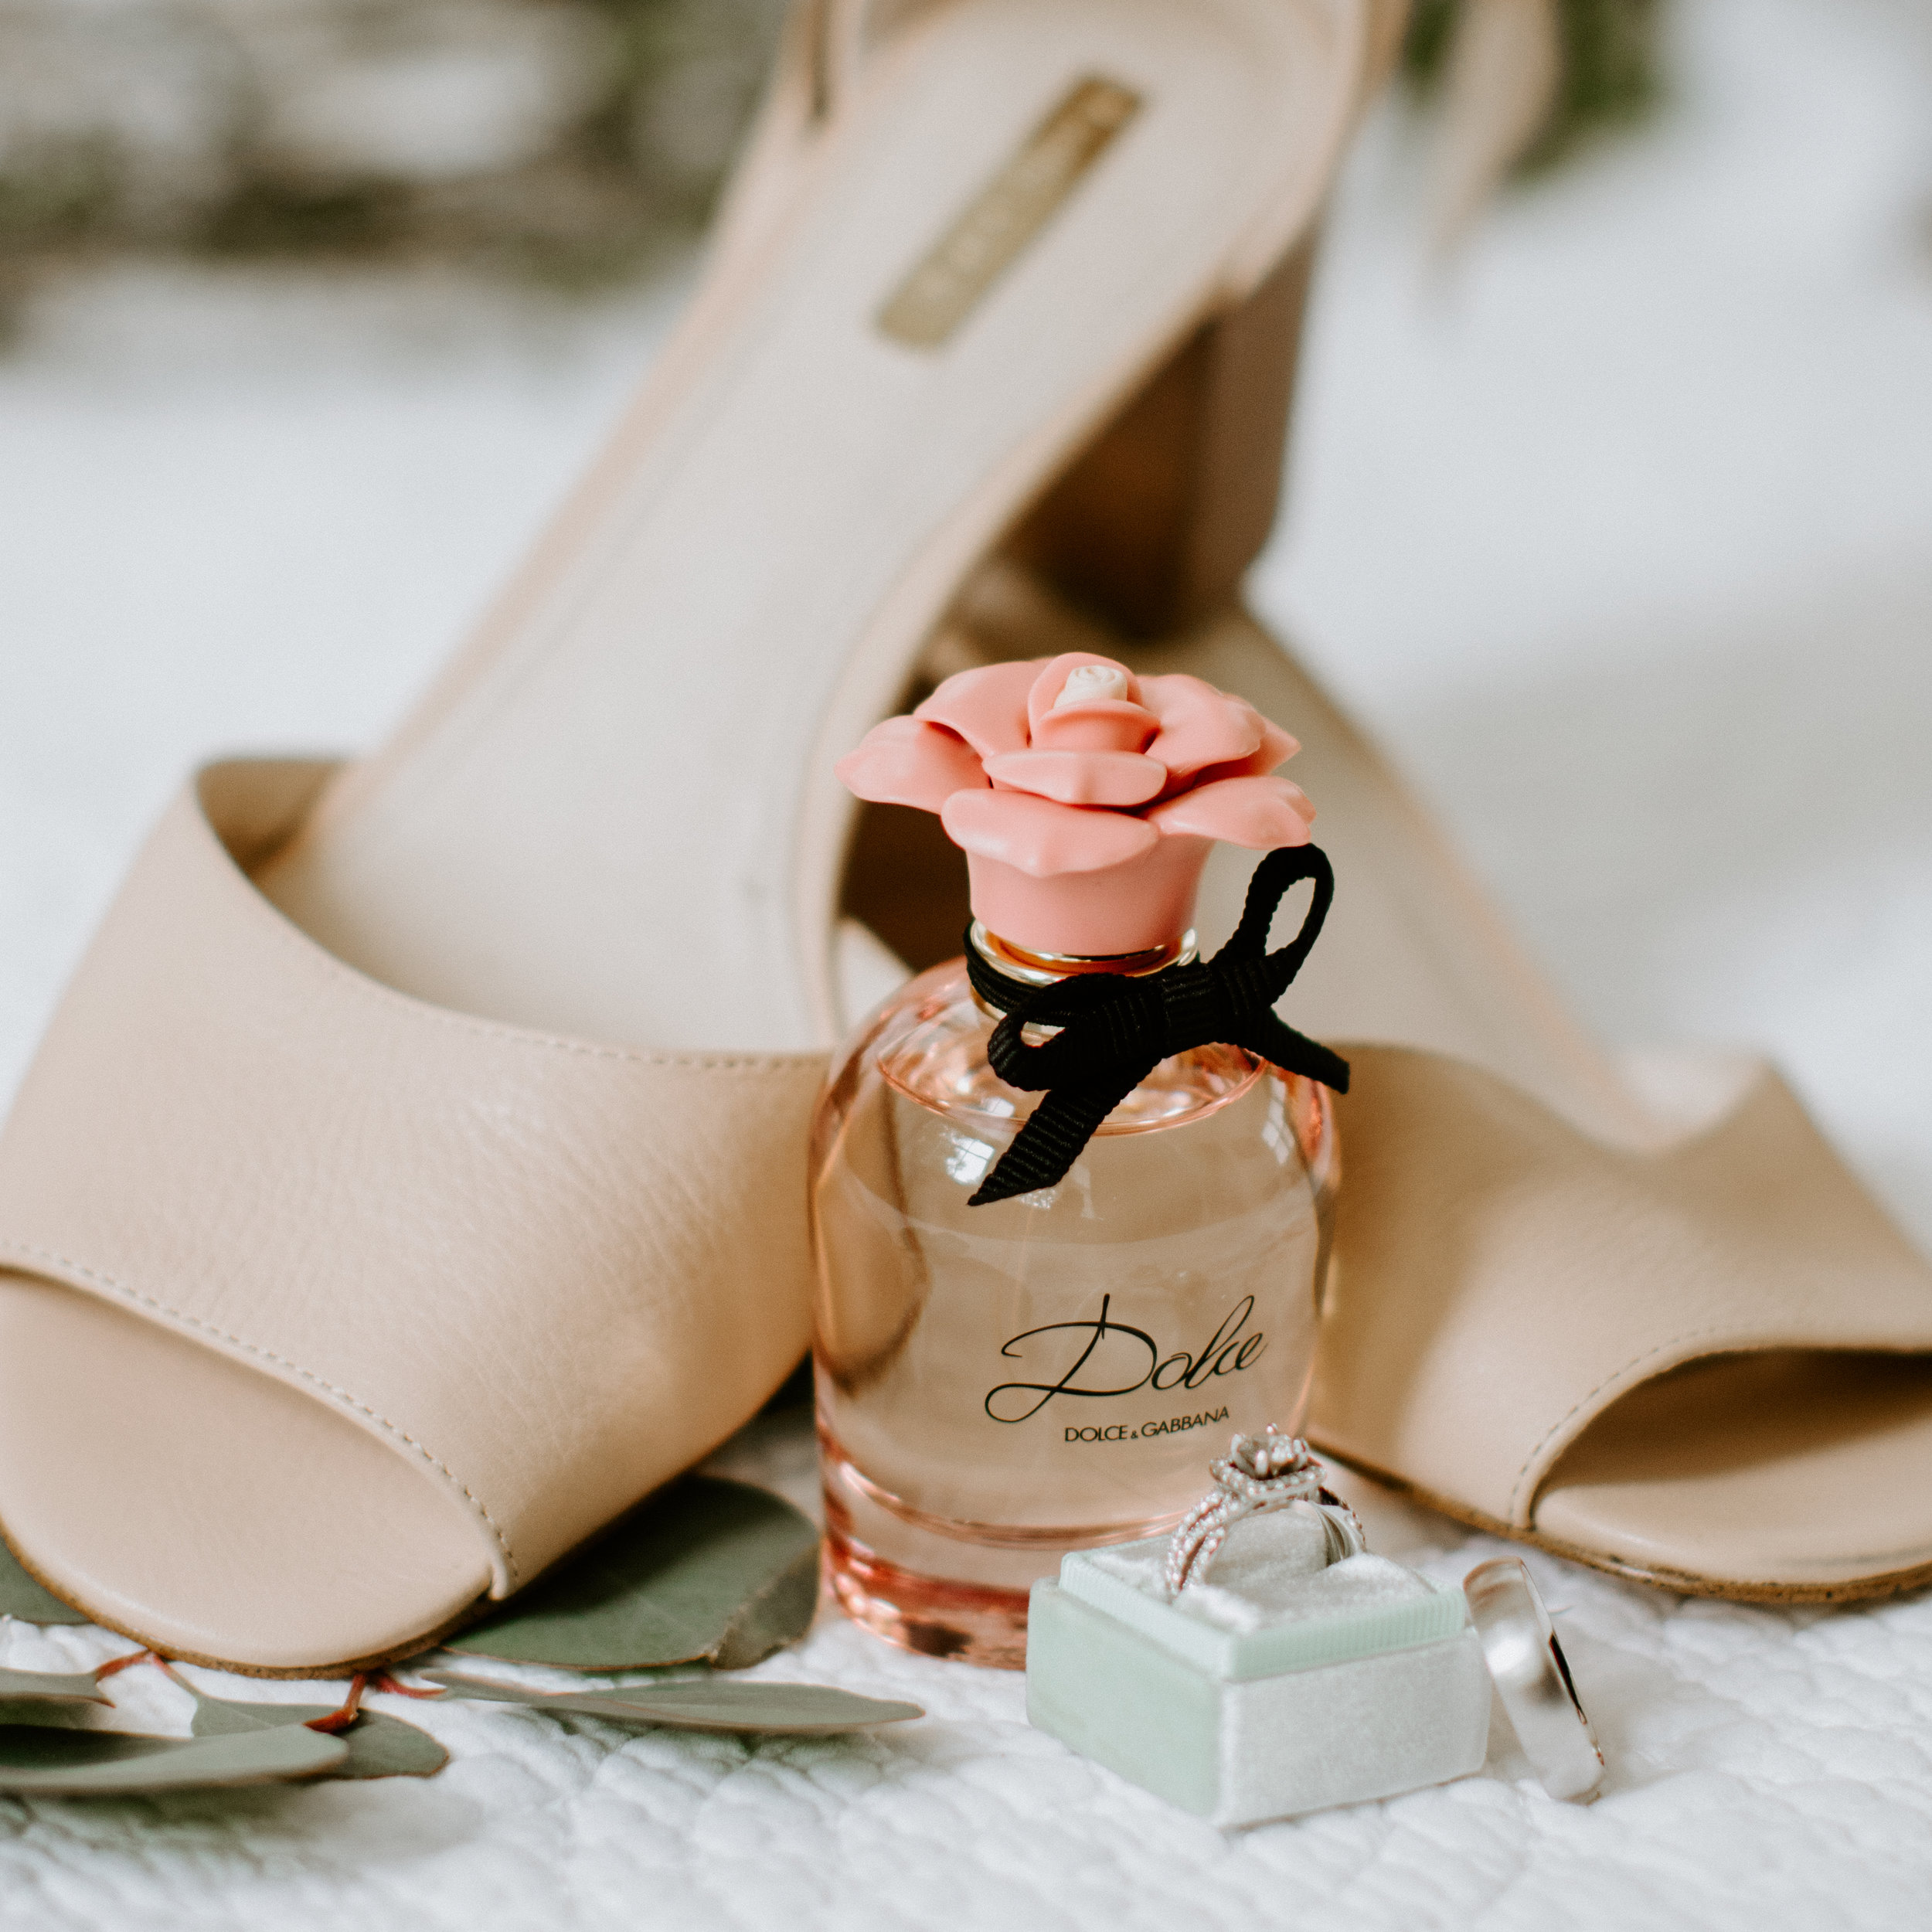 Wedding Details Photo by Kerri Carlquist Photography